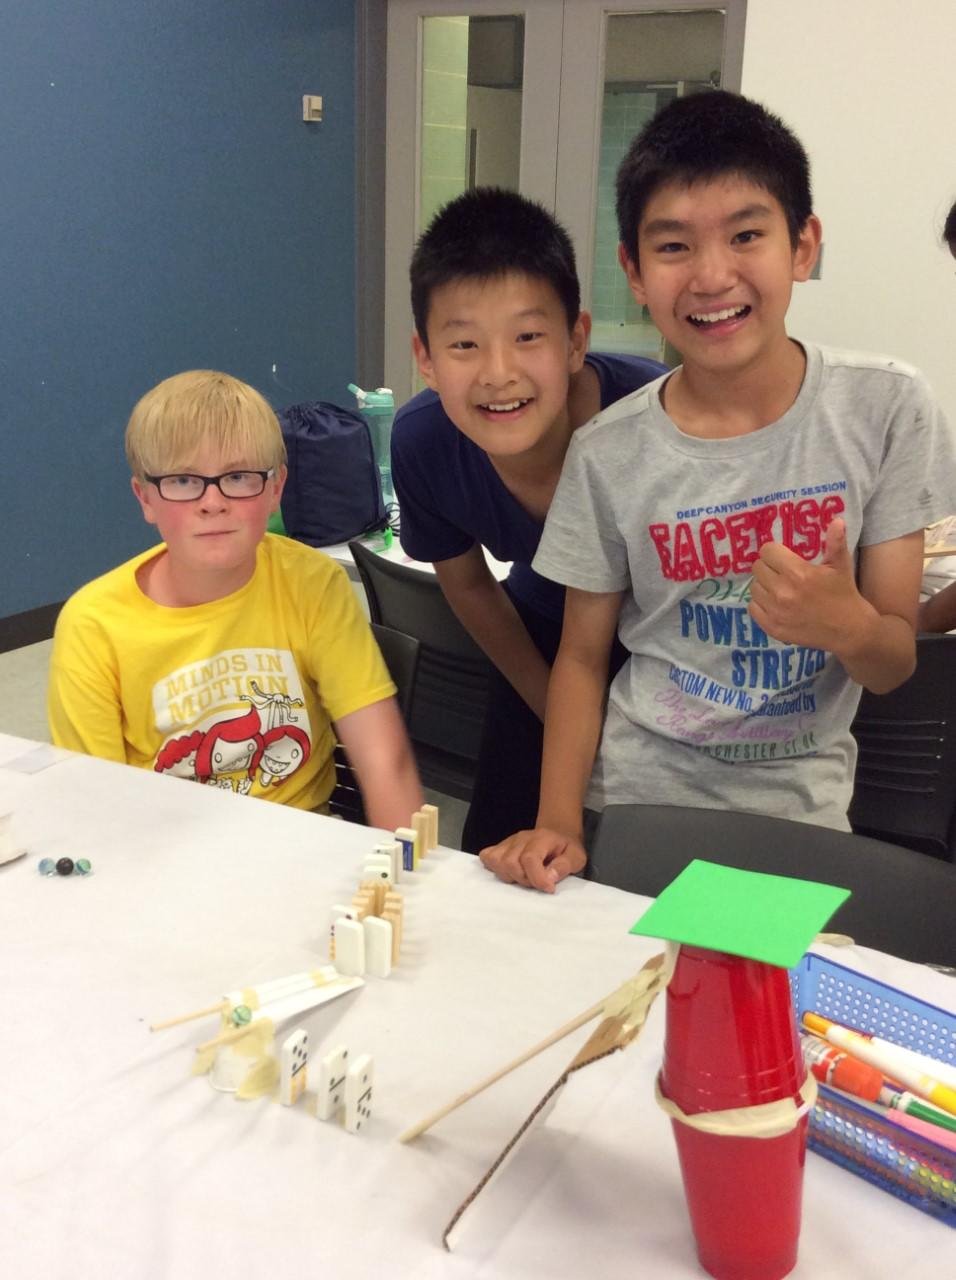 Rube Goldberg Machine activity with UCalgary Minds in Motion